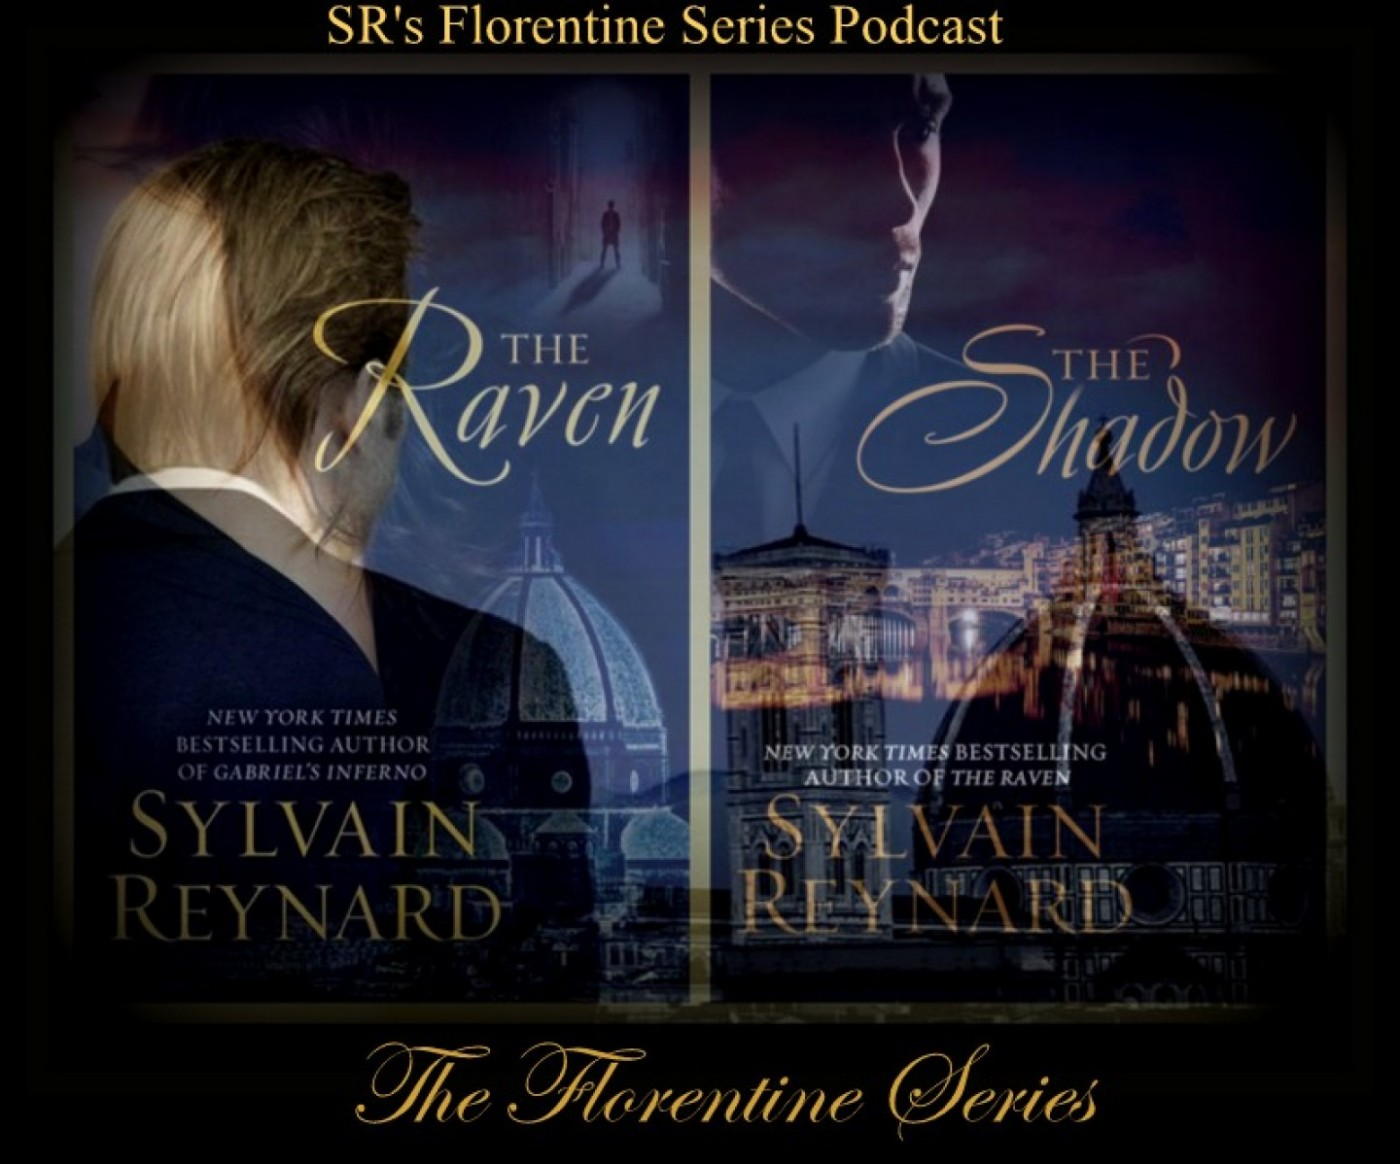 SR's Florentine Series Fanbased podcast